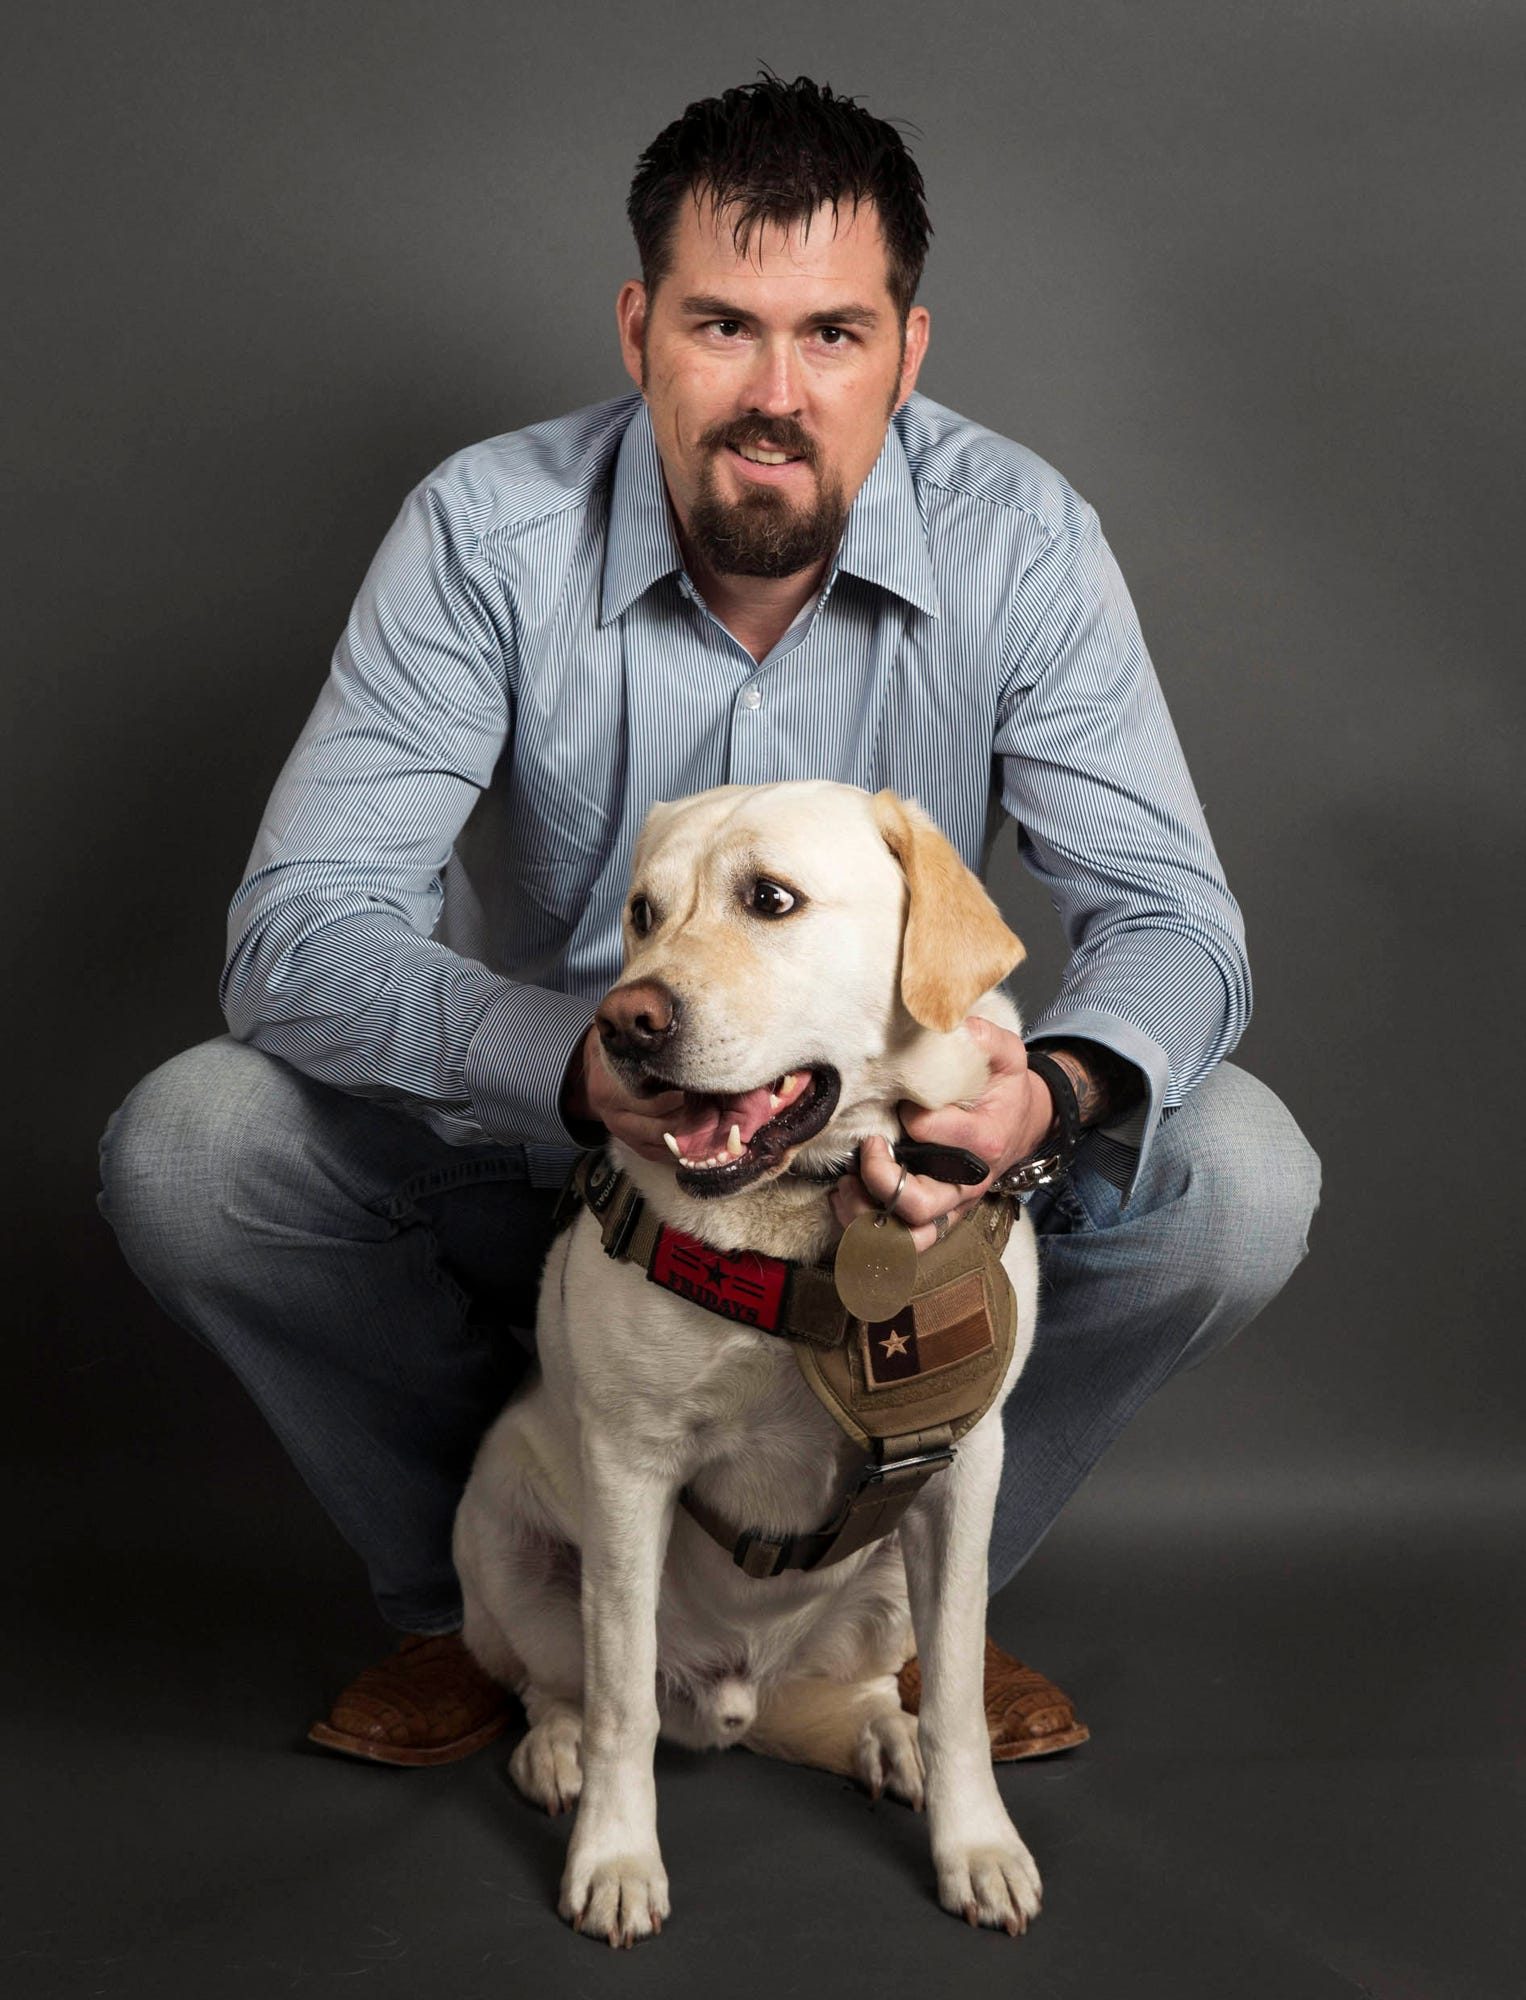 marcus luttrell height